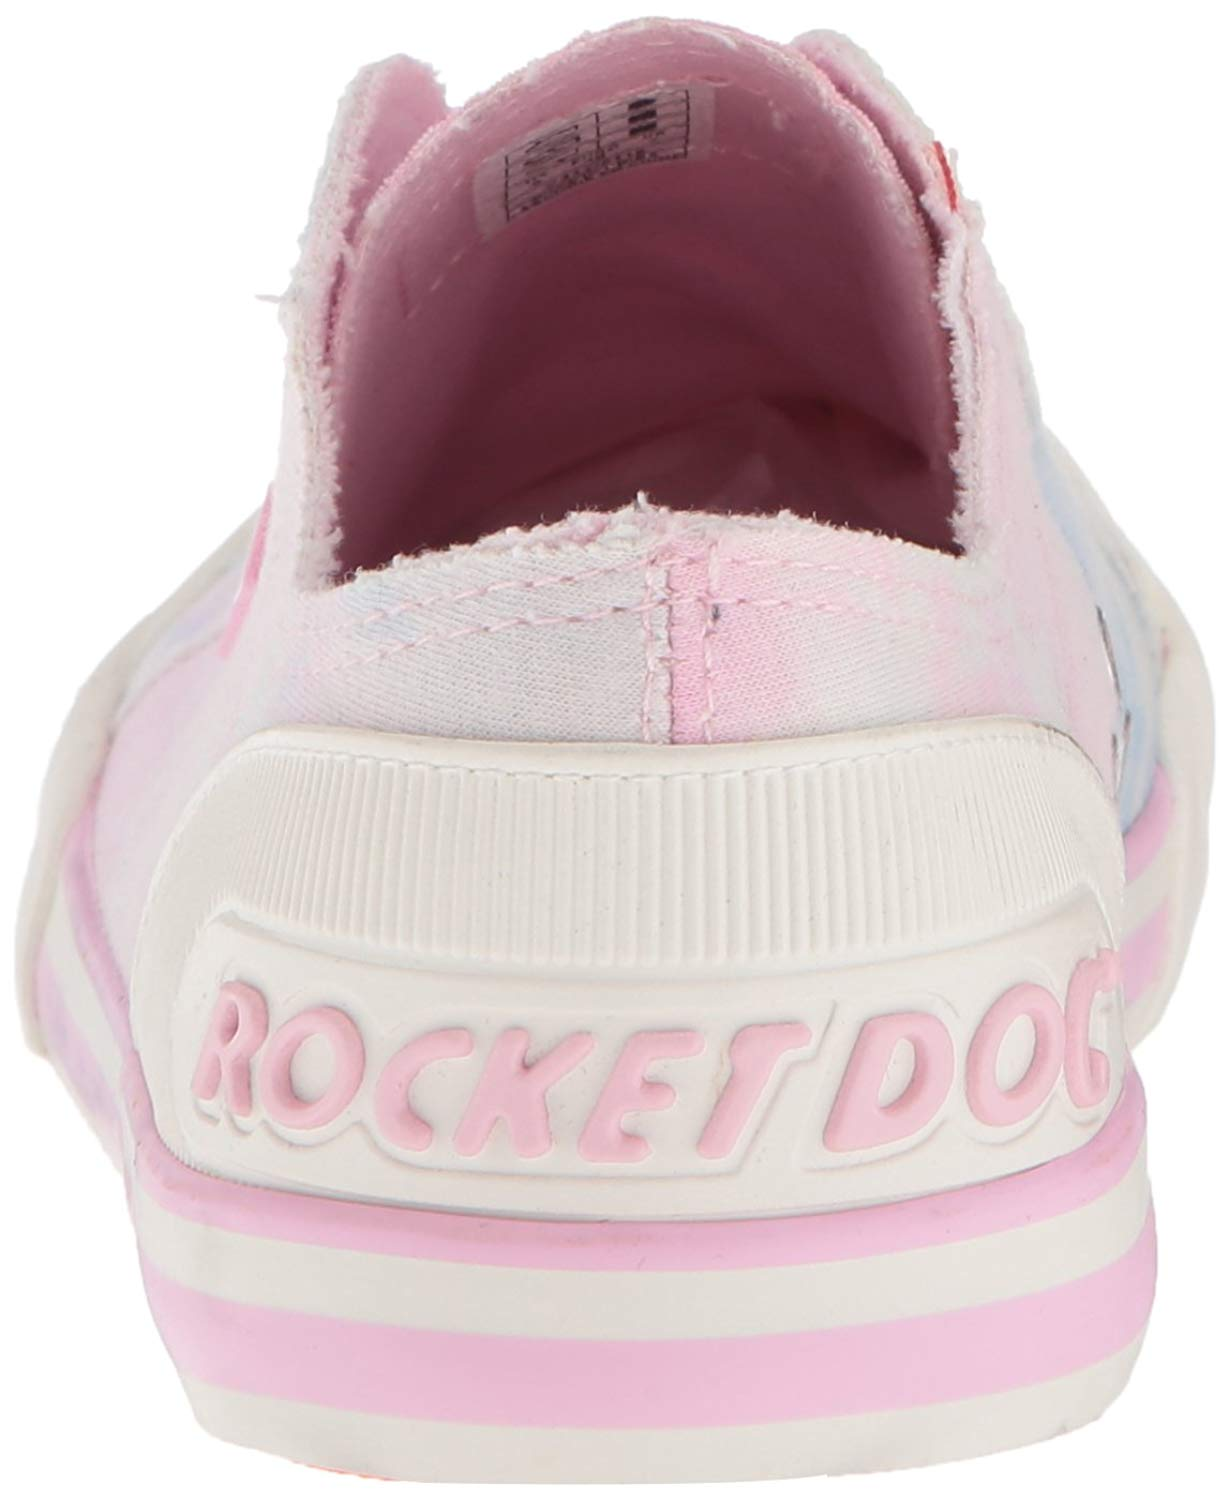 Rocket Dog Rocket Dog Women's Jazzin Vision Cotton Sneaker